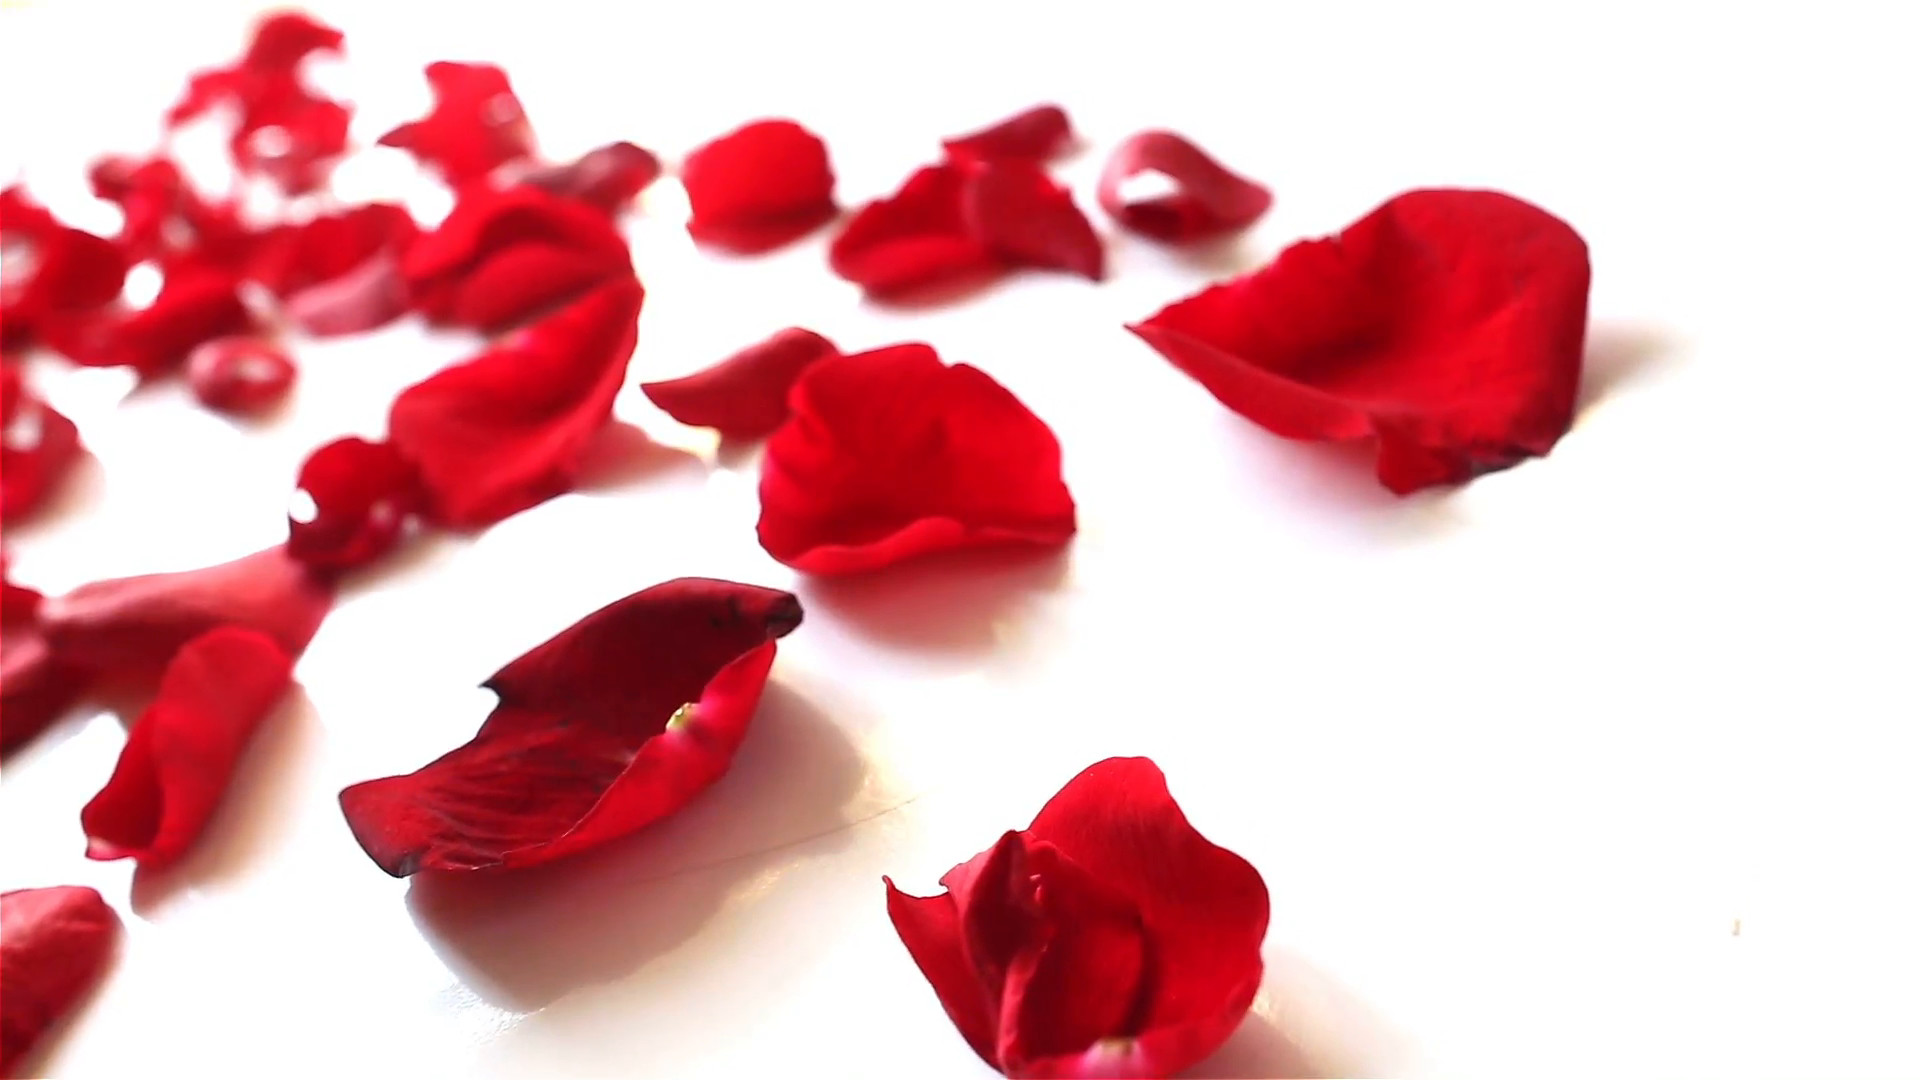 1920x1080 Red rose petals on white background, close up dolly shot Stock Video  Footage - Storyblocks Video